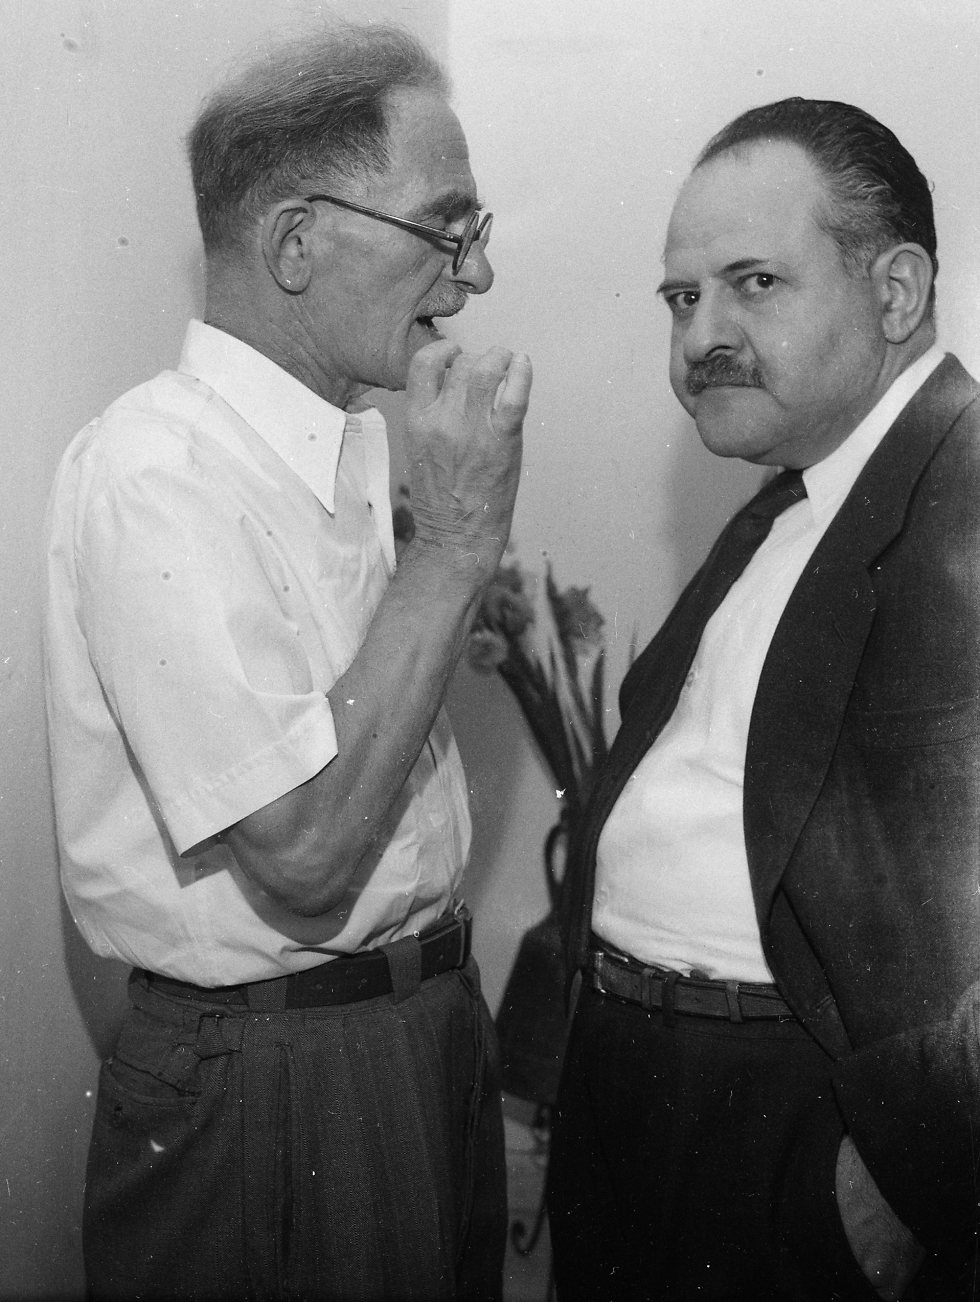 MK Moshe Sneh speaking to MK Moshe Erem at the Knesset, 1955 (Photo: David Rubinger)